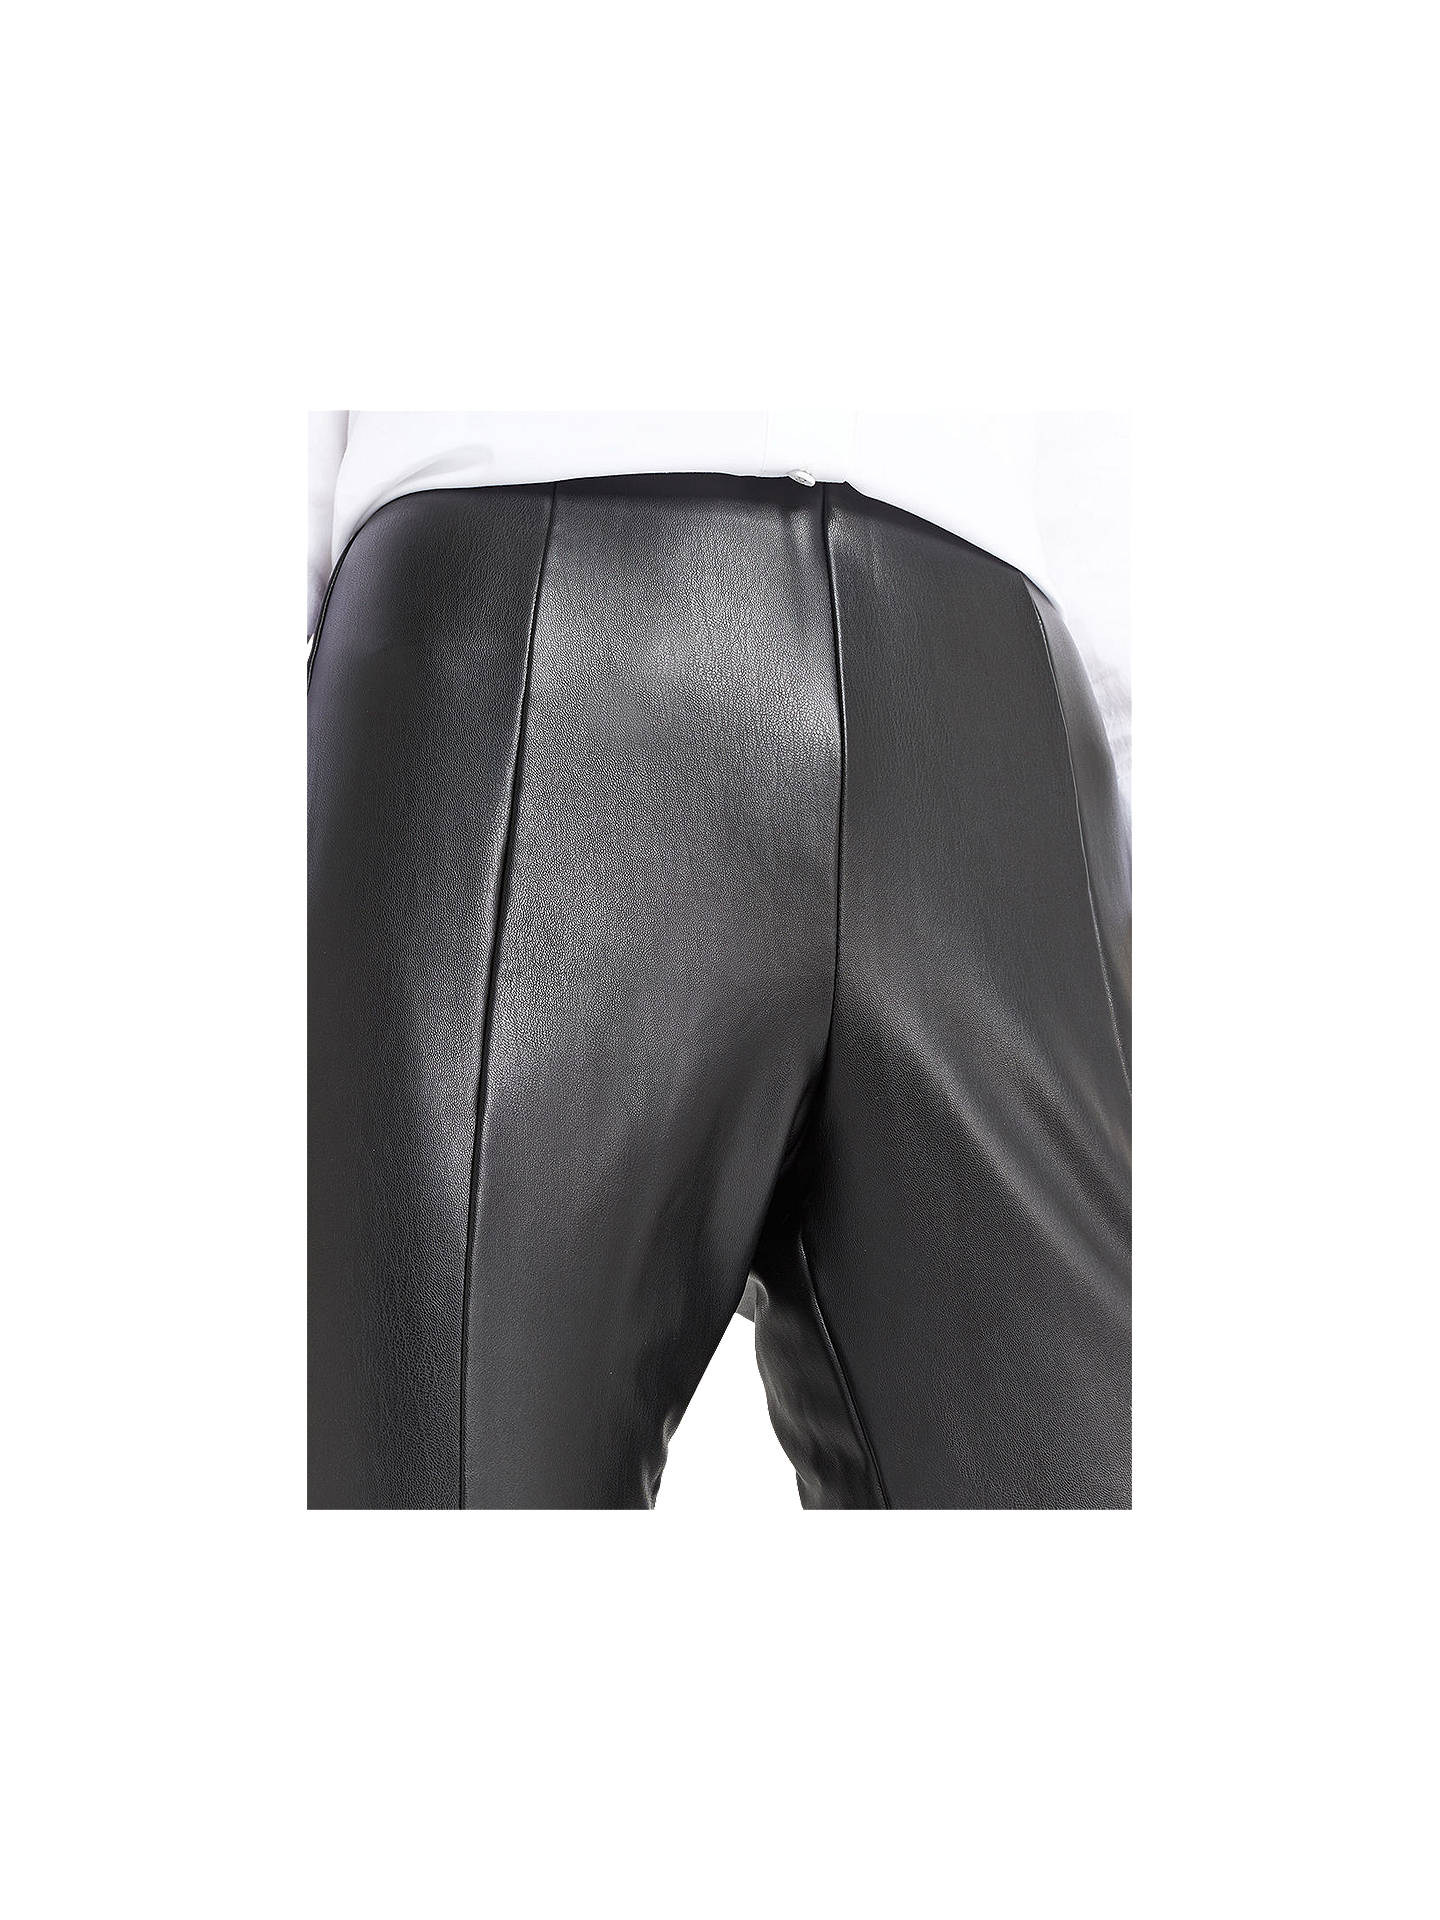 BuyOasis Faux Leather Stretch Leggings, Black, 8 Online at johnlewis.com